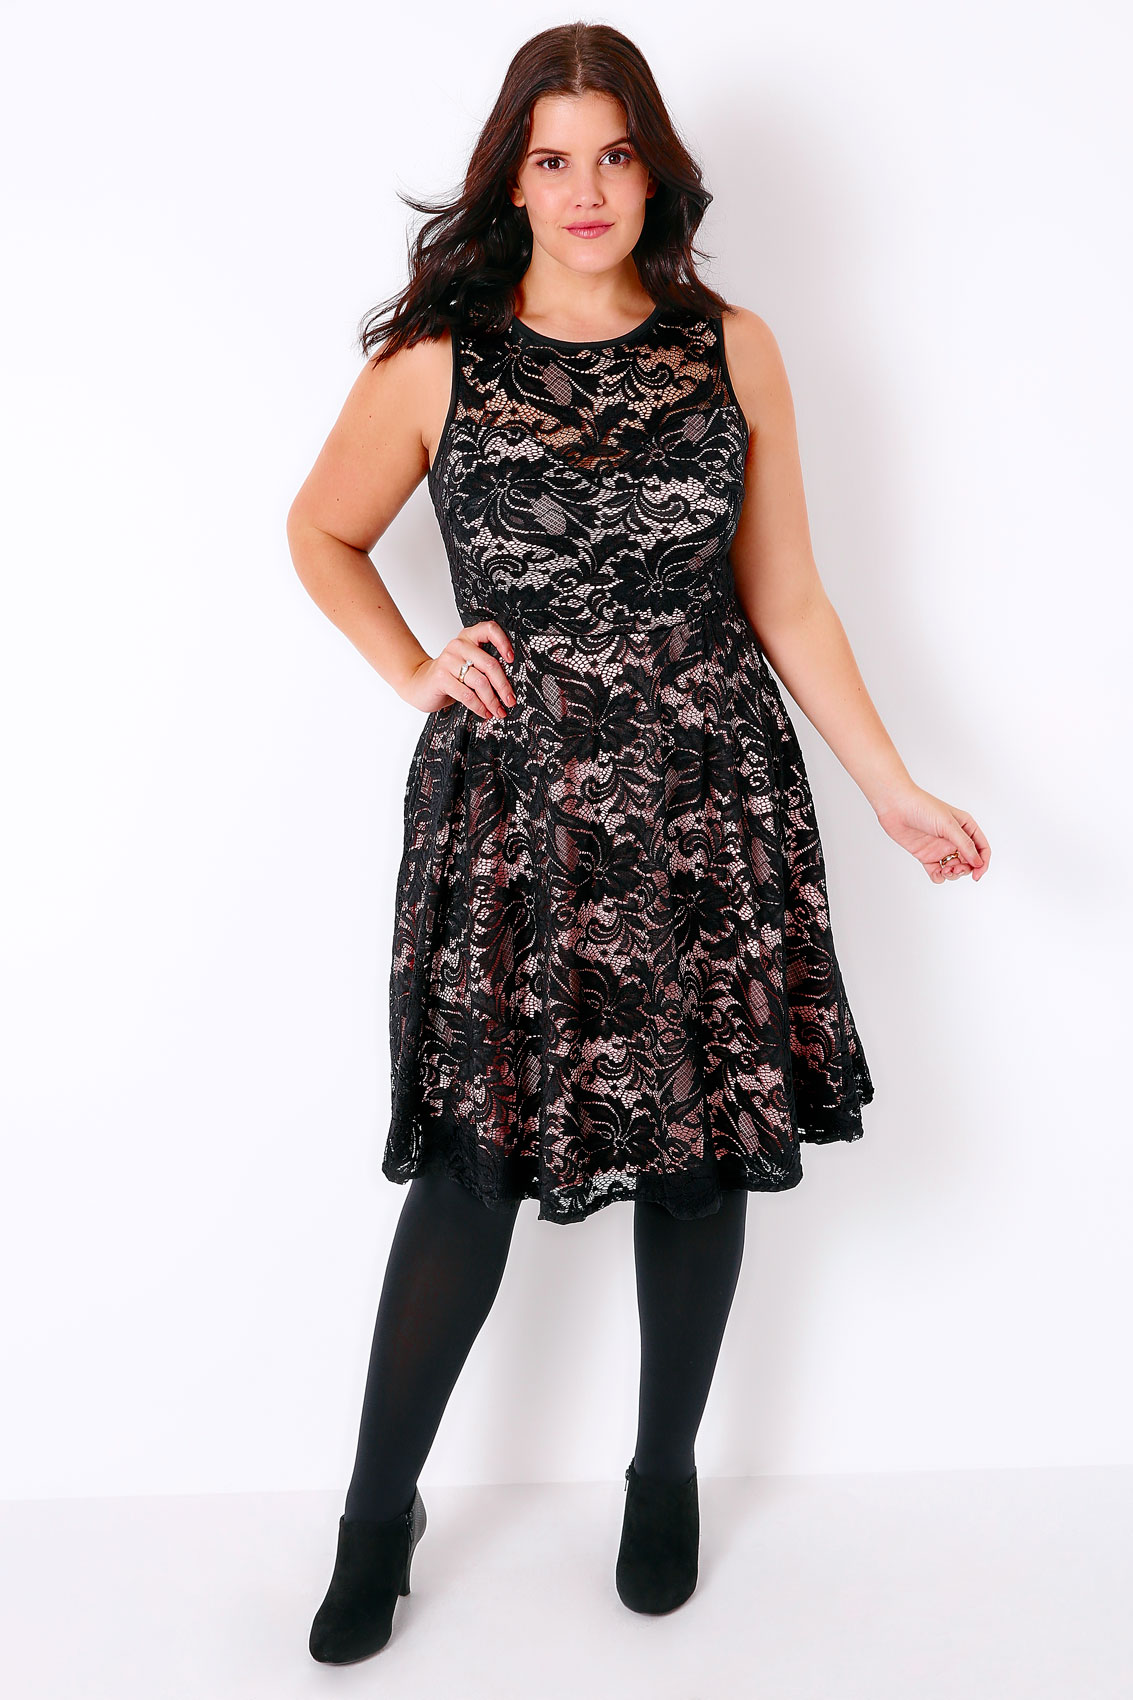 Check out Tobi's Emily Lace Bodycon Dress Spice it up with the Emily Black Lace Bodycon Dress! Featuring a beautiful lace overlay with a fully lined interior .